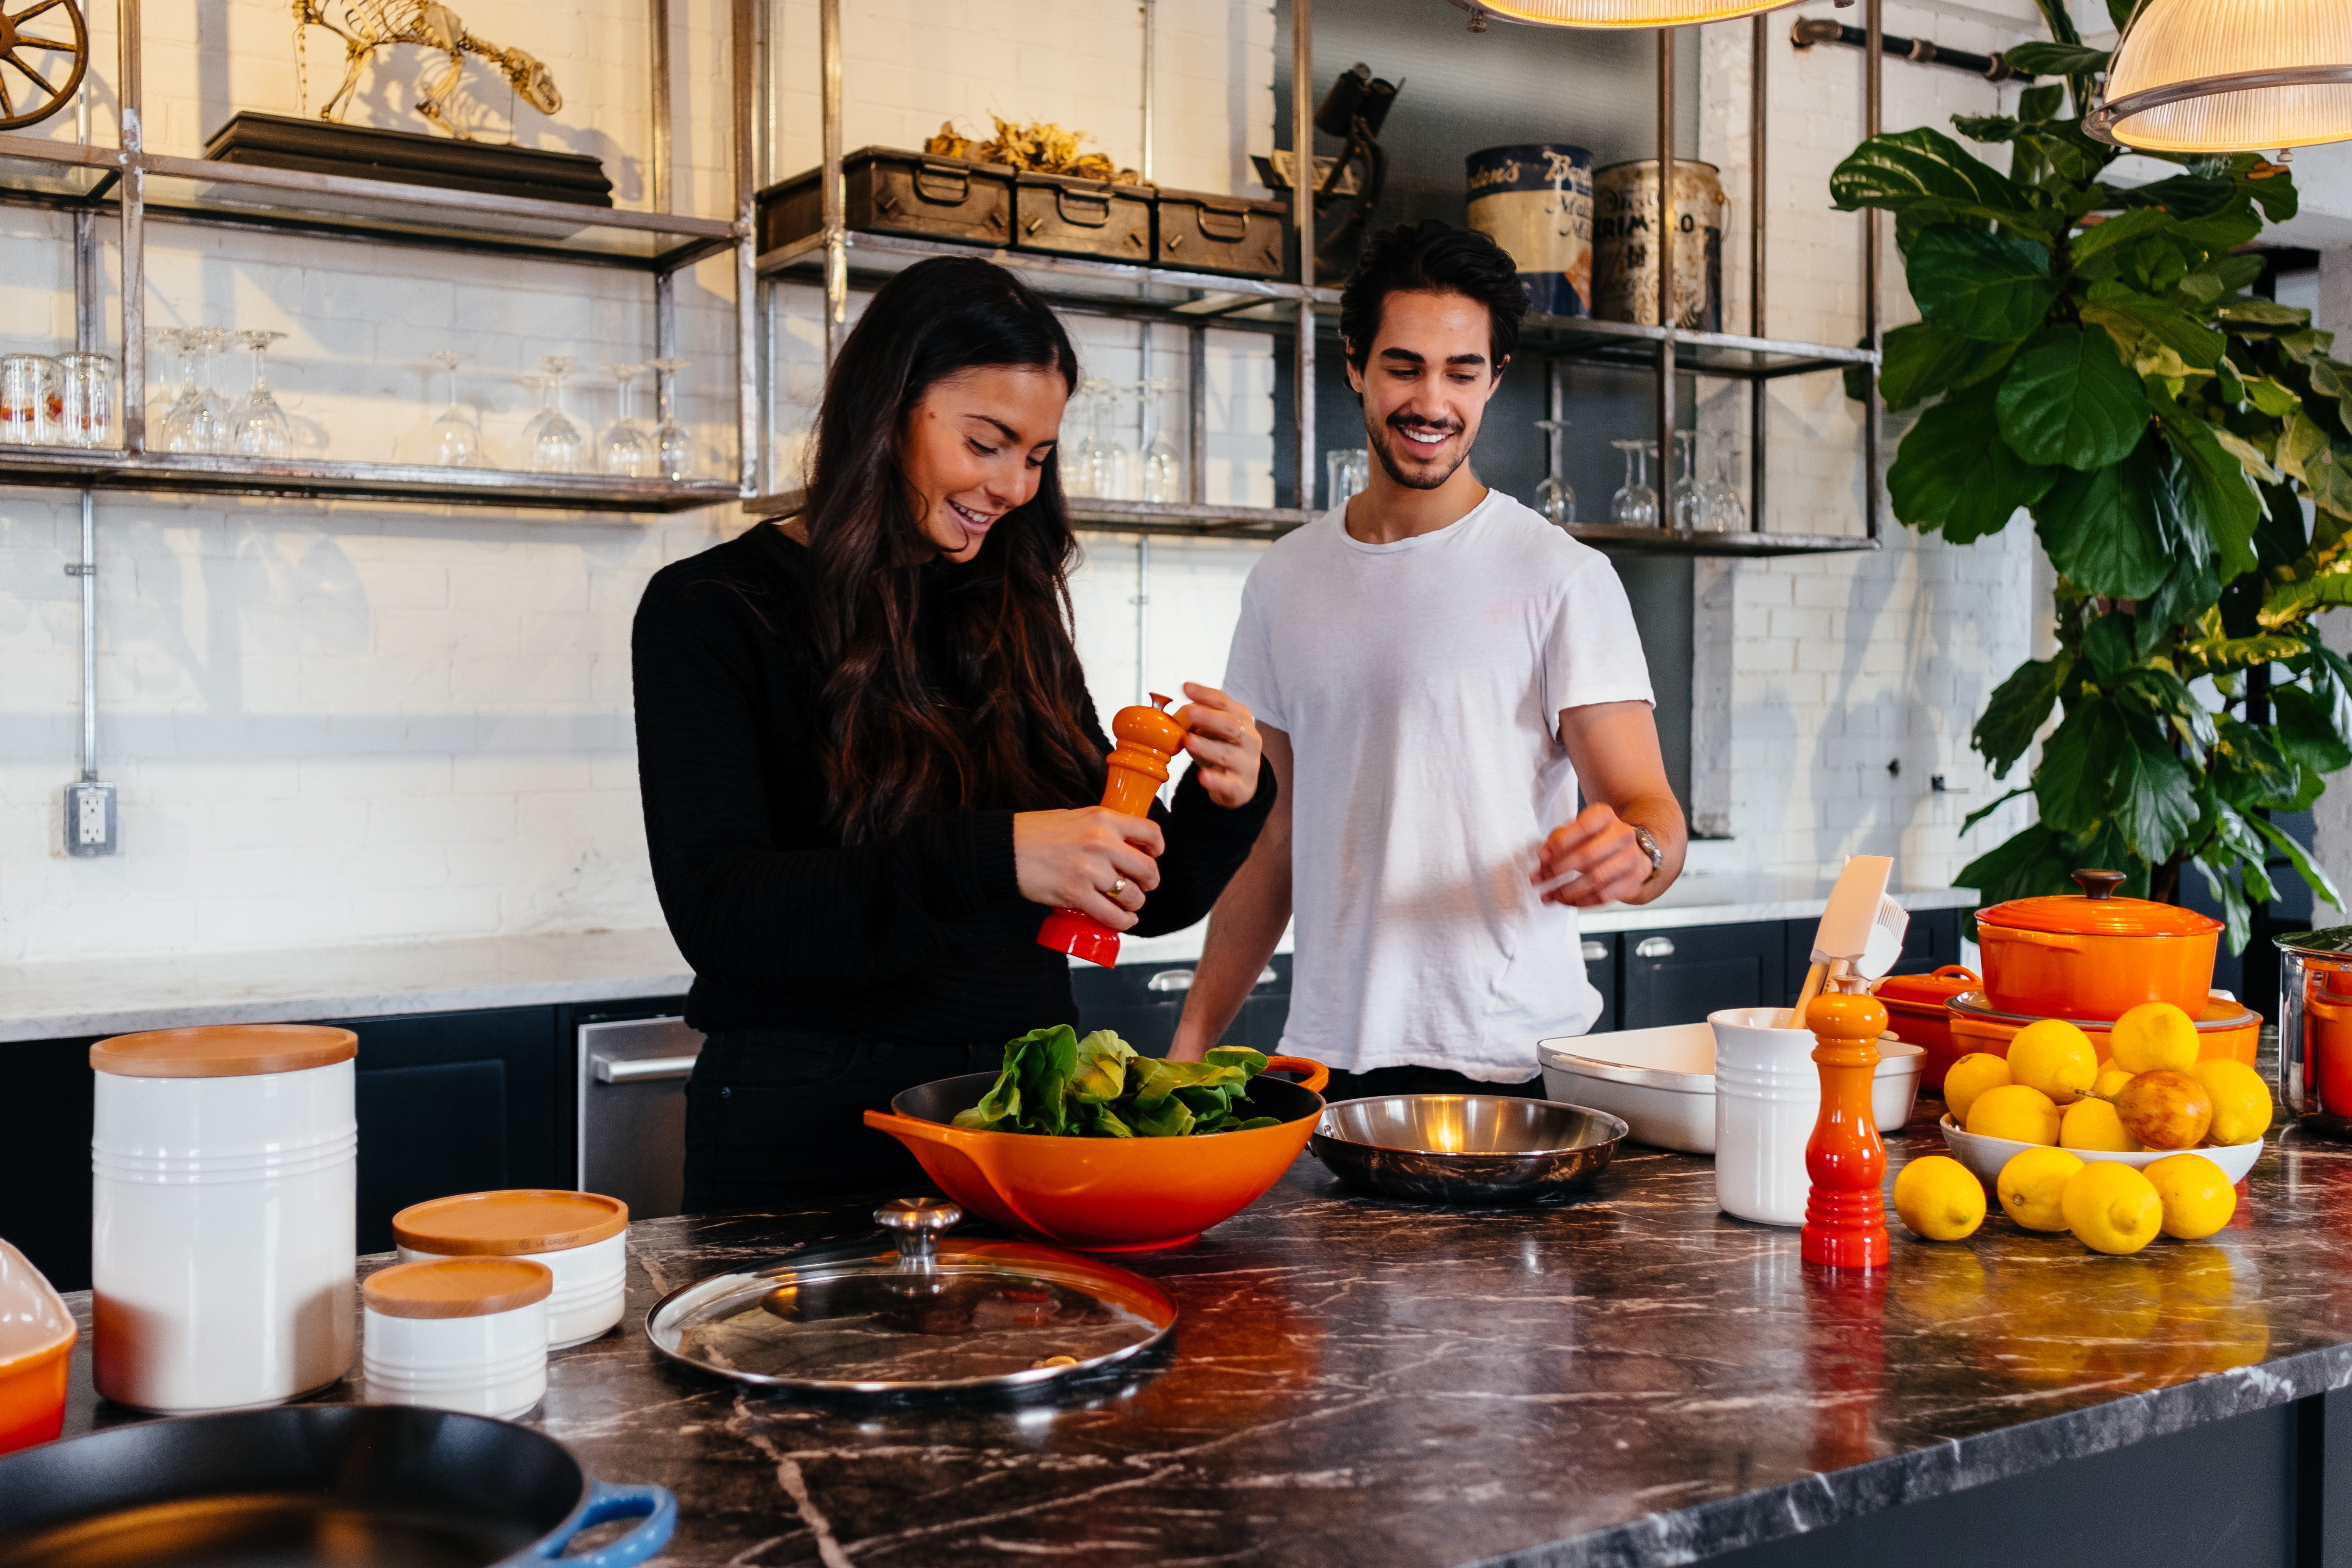 A couple, cooking together, in a kitchen with marble counters, metal shelves in the back and orange bowls, pots and other accents. She's wearing black and has long black hair, he's wearing a white tshirt.